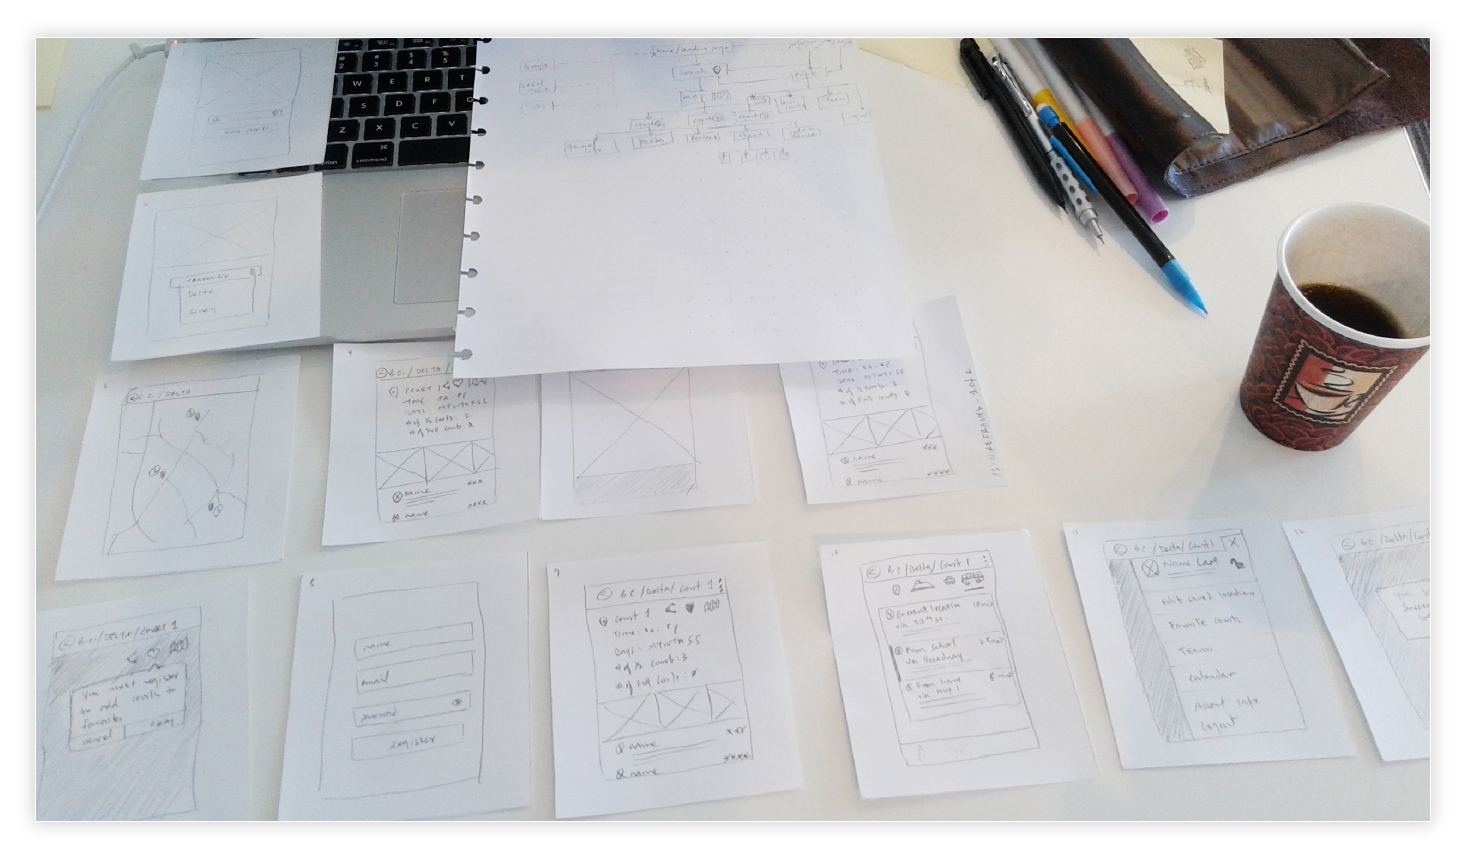 Low-Fidelity, paper wireframes showing some of the screens.